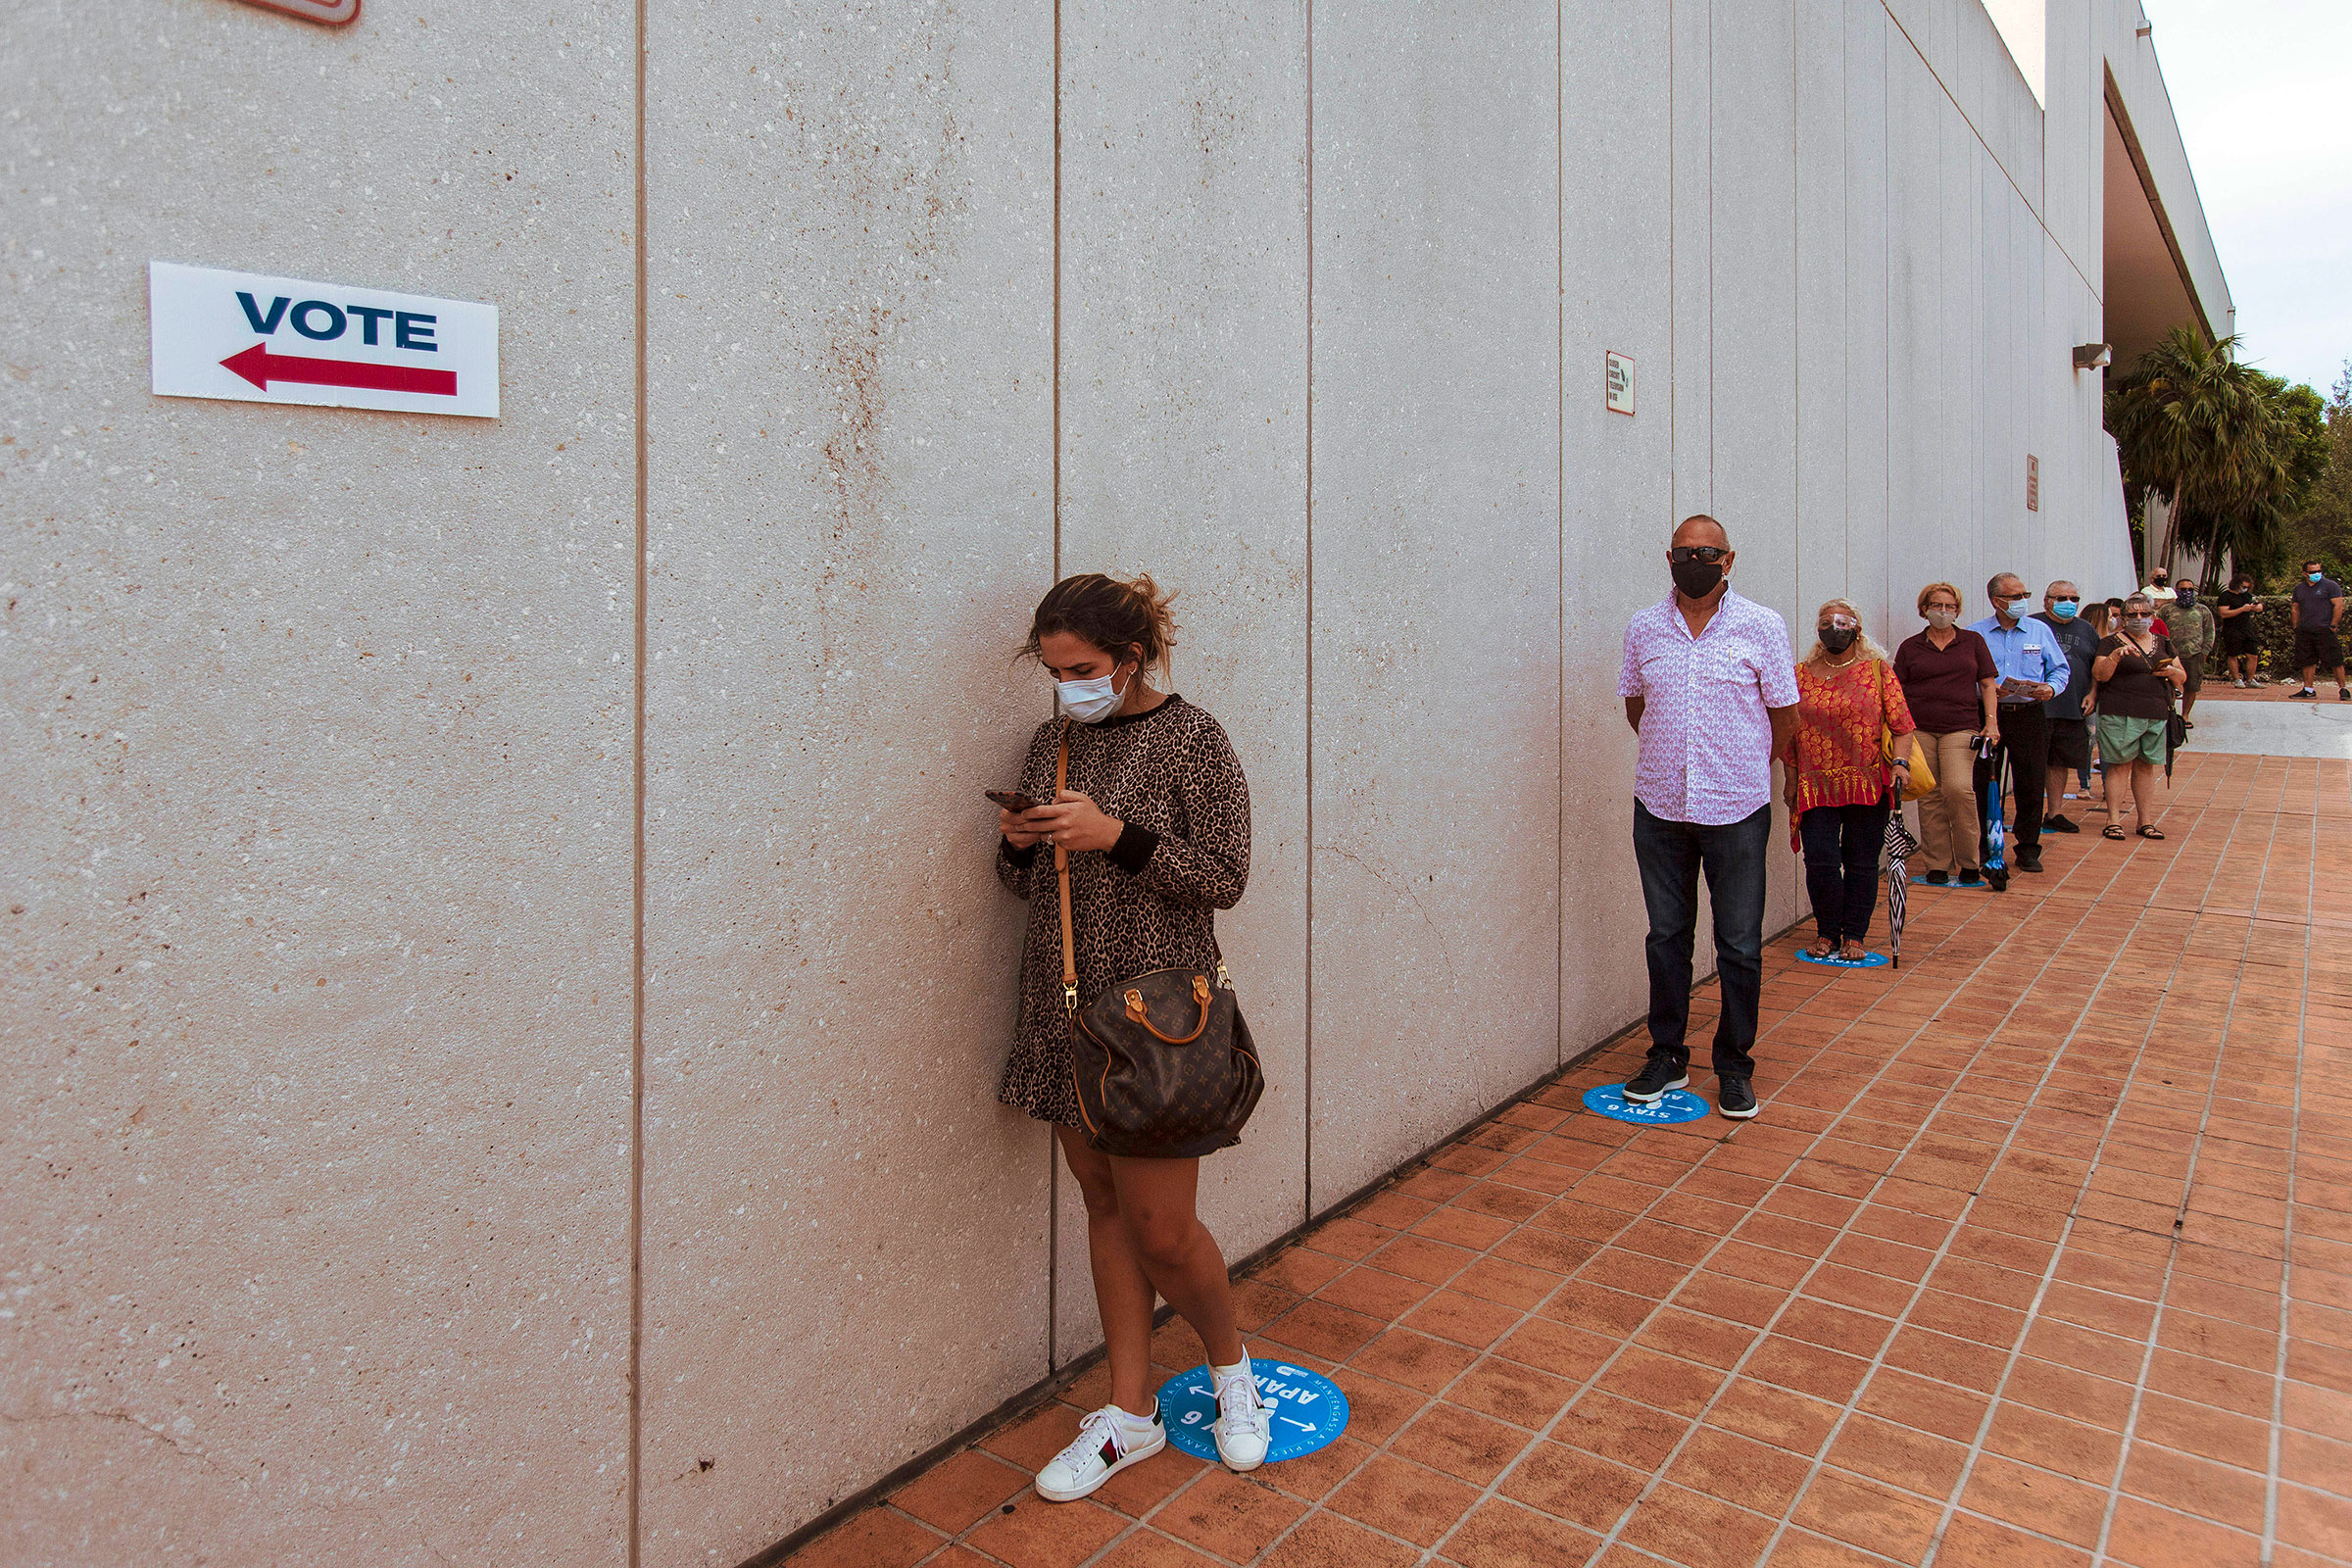 People wait on line to cast their ballot on the first day of early voting at a polling place in Miami, Fla., Oct. 19, 2020.